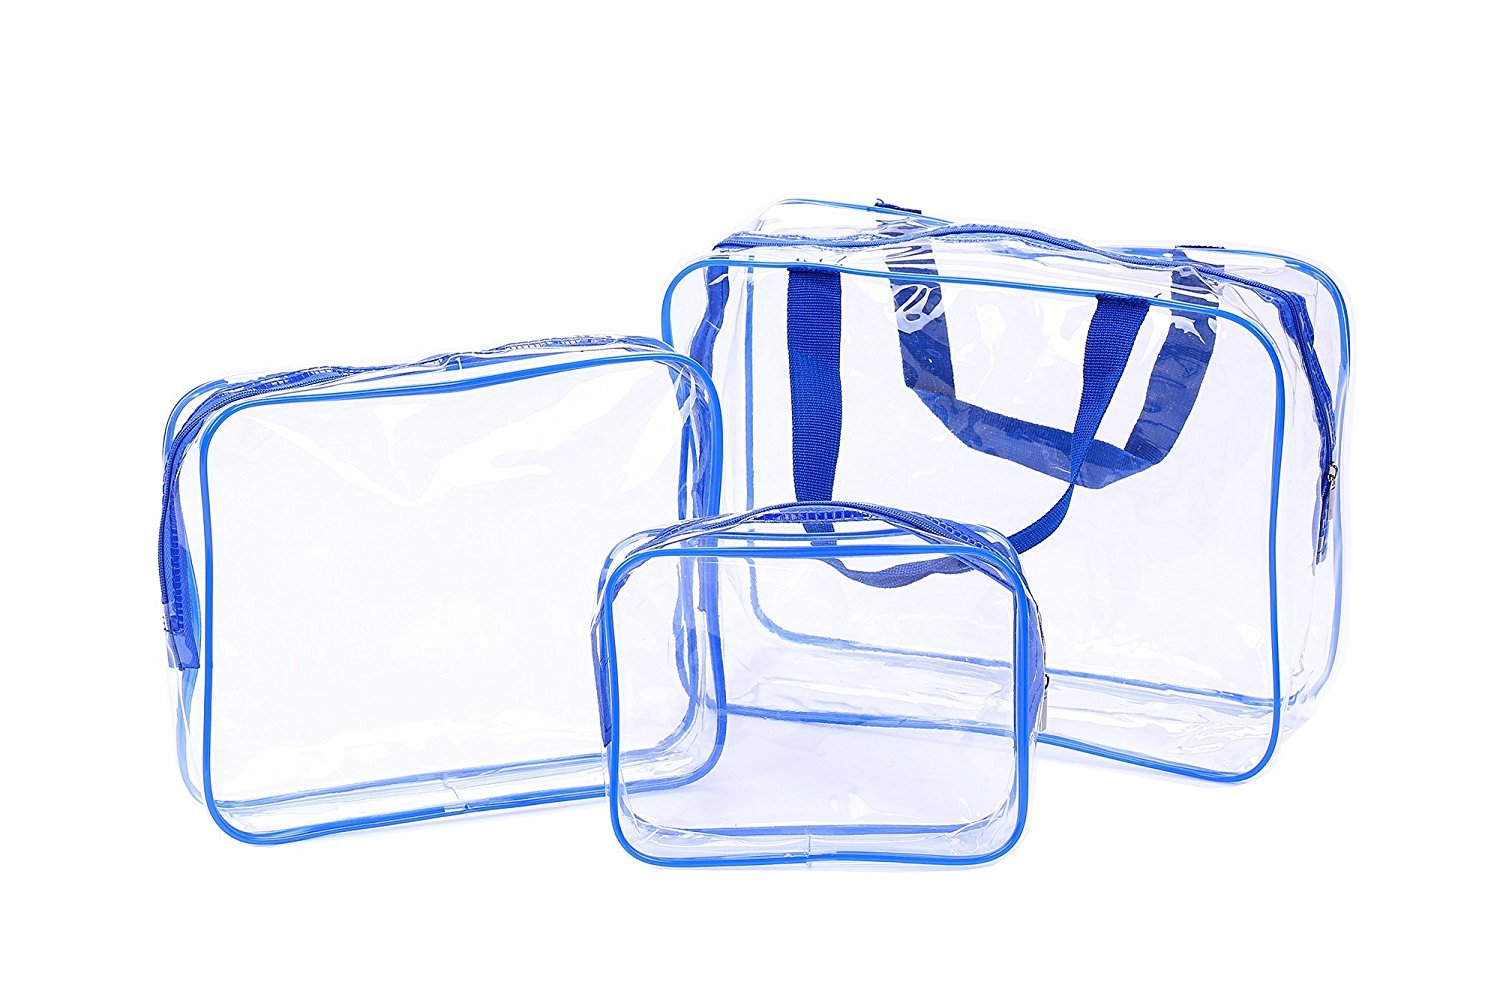 e4d5e880c94b Get Quotations · Cothyen Carry On Clear Travel Toiletry Bag